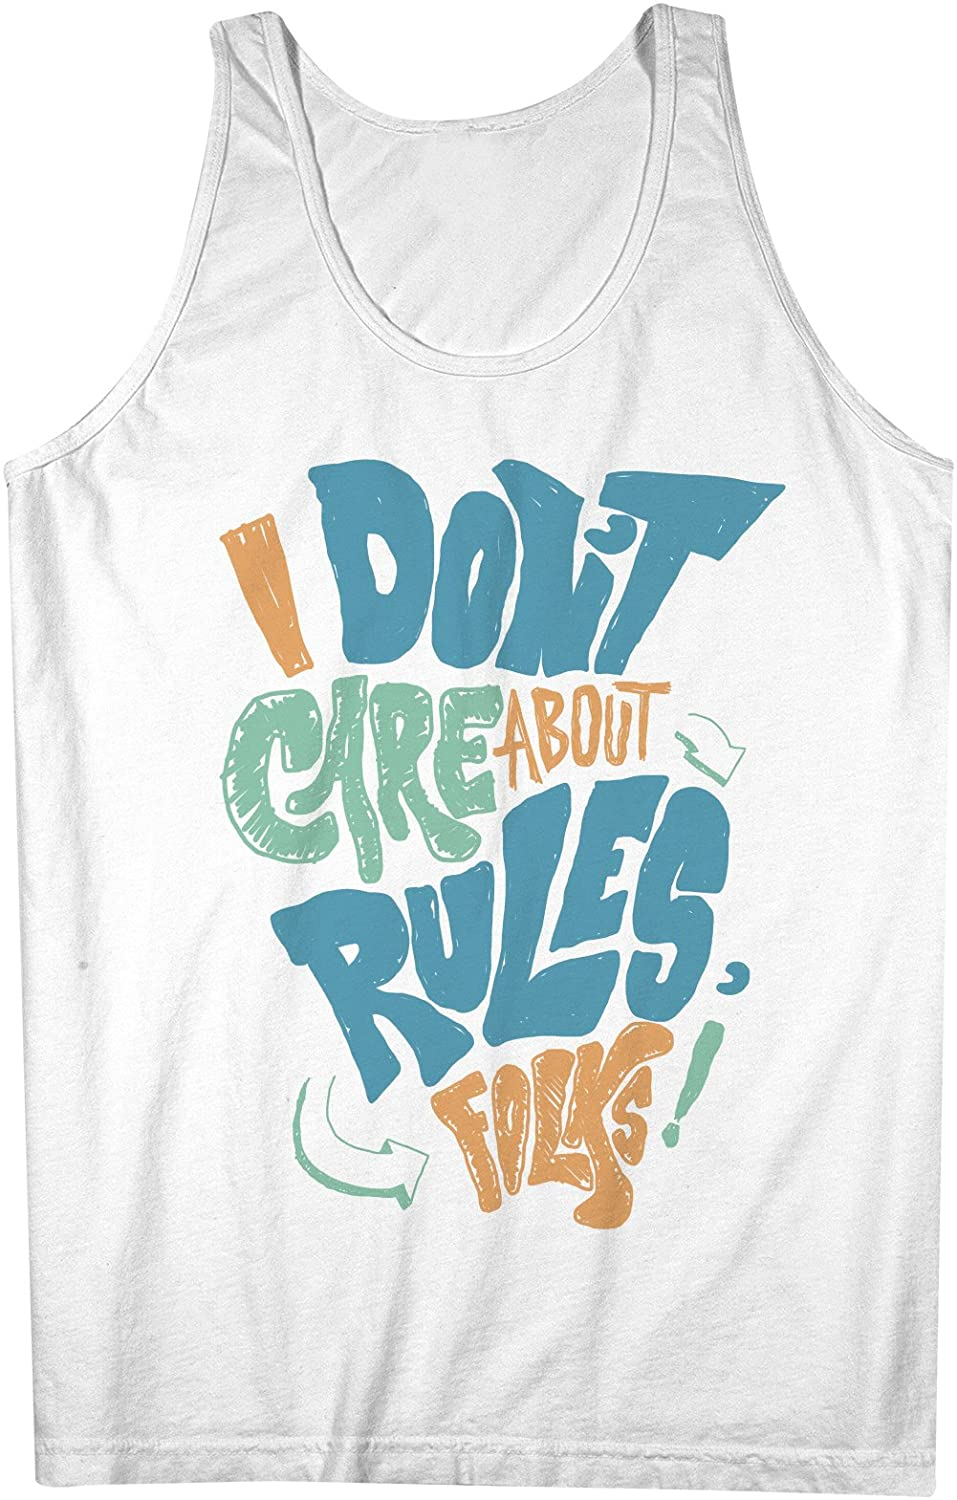 I Dont Care About Rules Folks Men's Tank Top Sleeveless Shirt